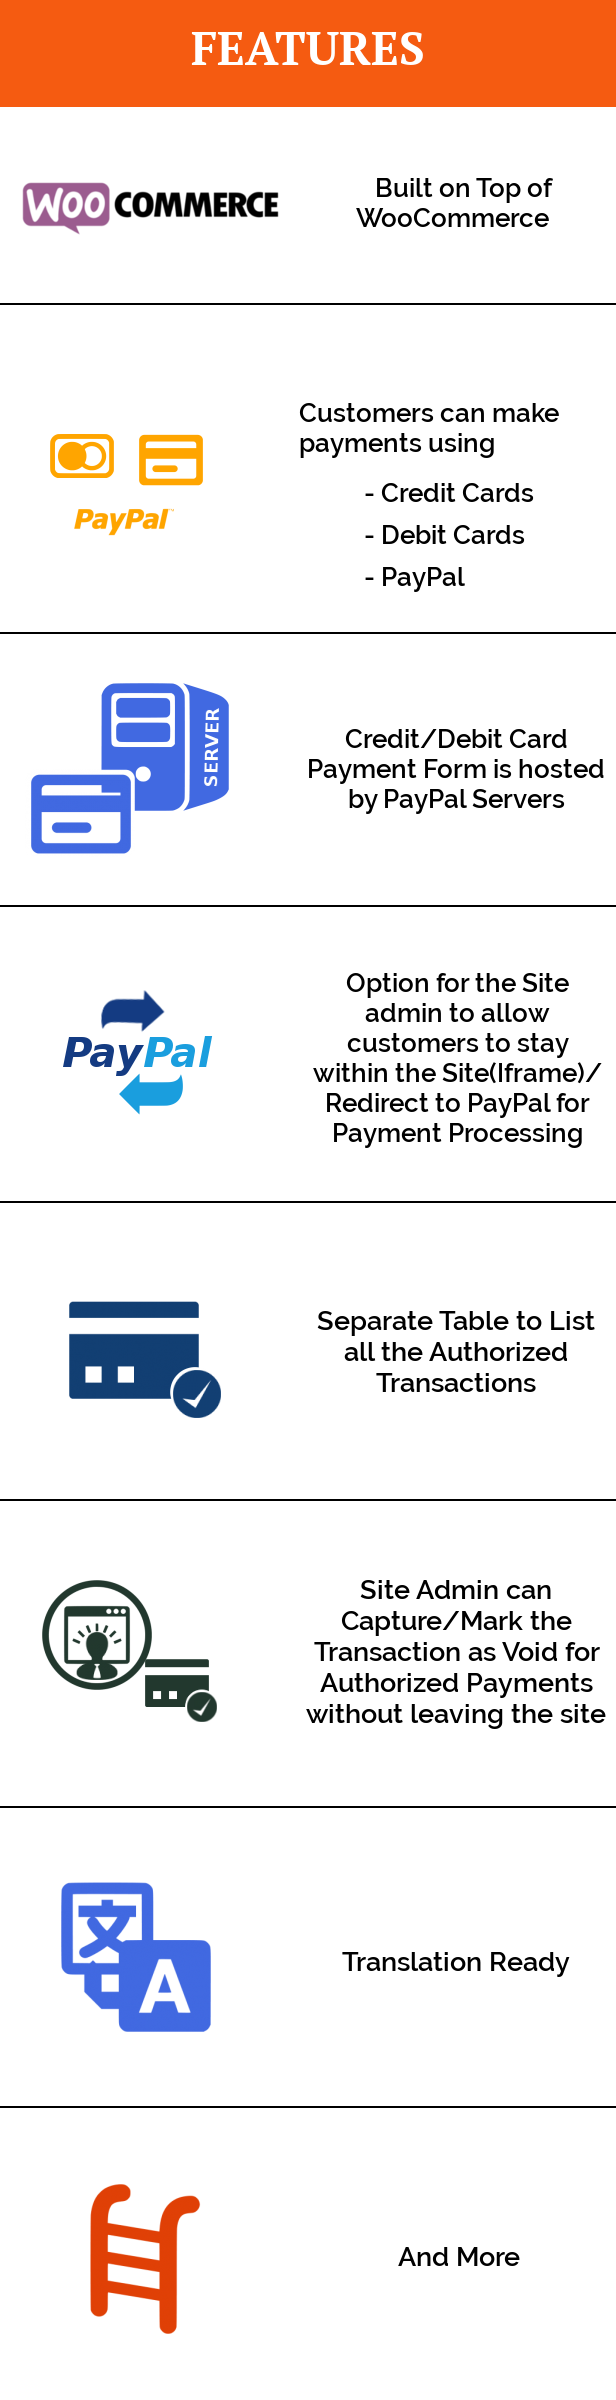 Nulled WordPress Plugins And Themes: WooCommerce PayPal Website